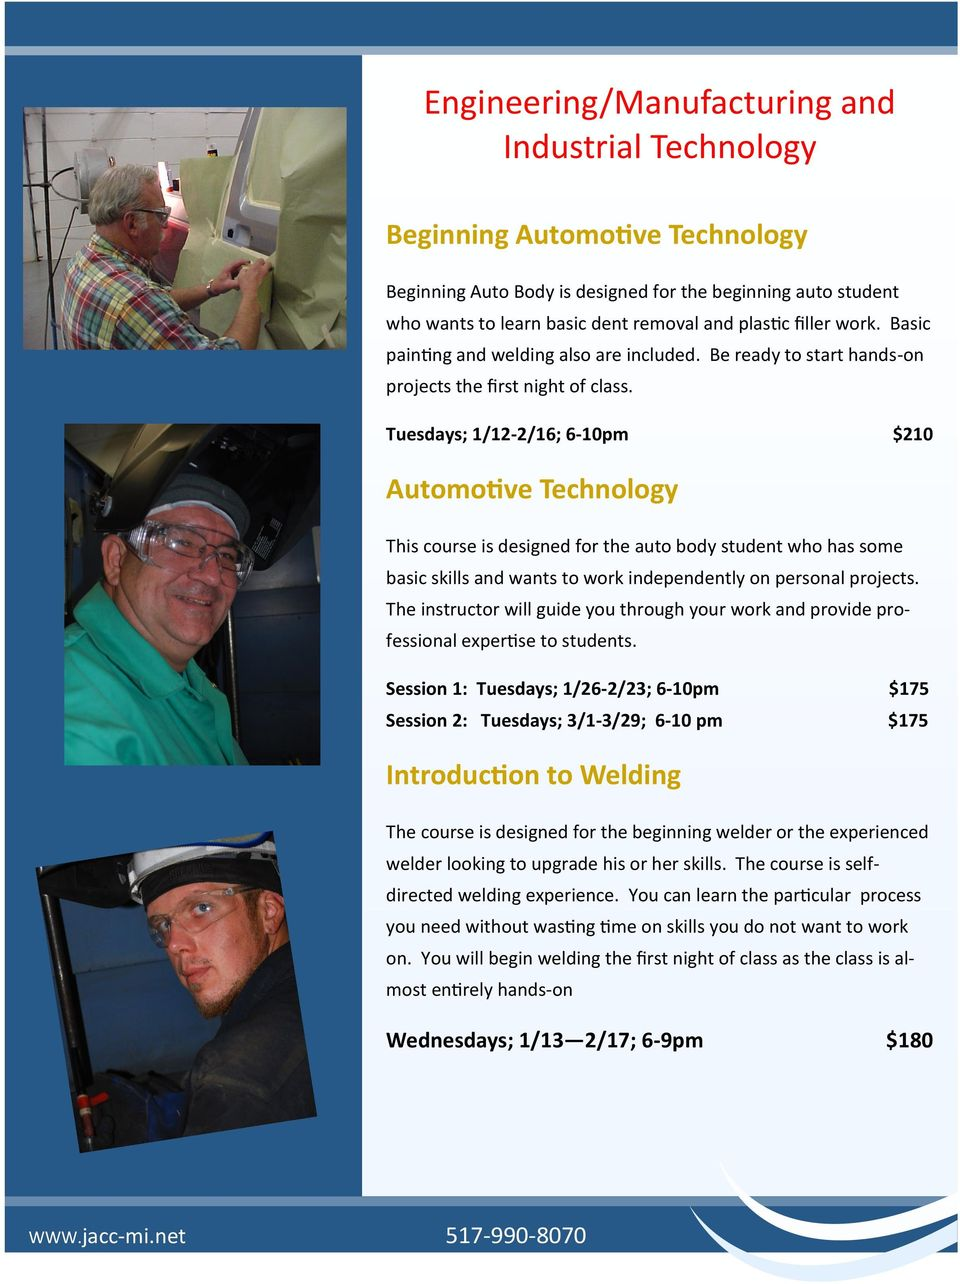 Tuesdays; 1/12-2/16; 6-10pm $210 Automotive Technology This course is designed for the auto body student who has some basic skills and wants to work independently on personal projects.